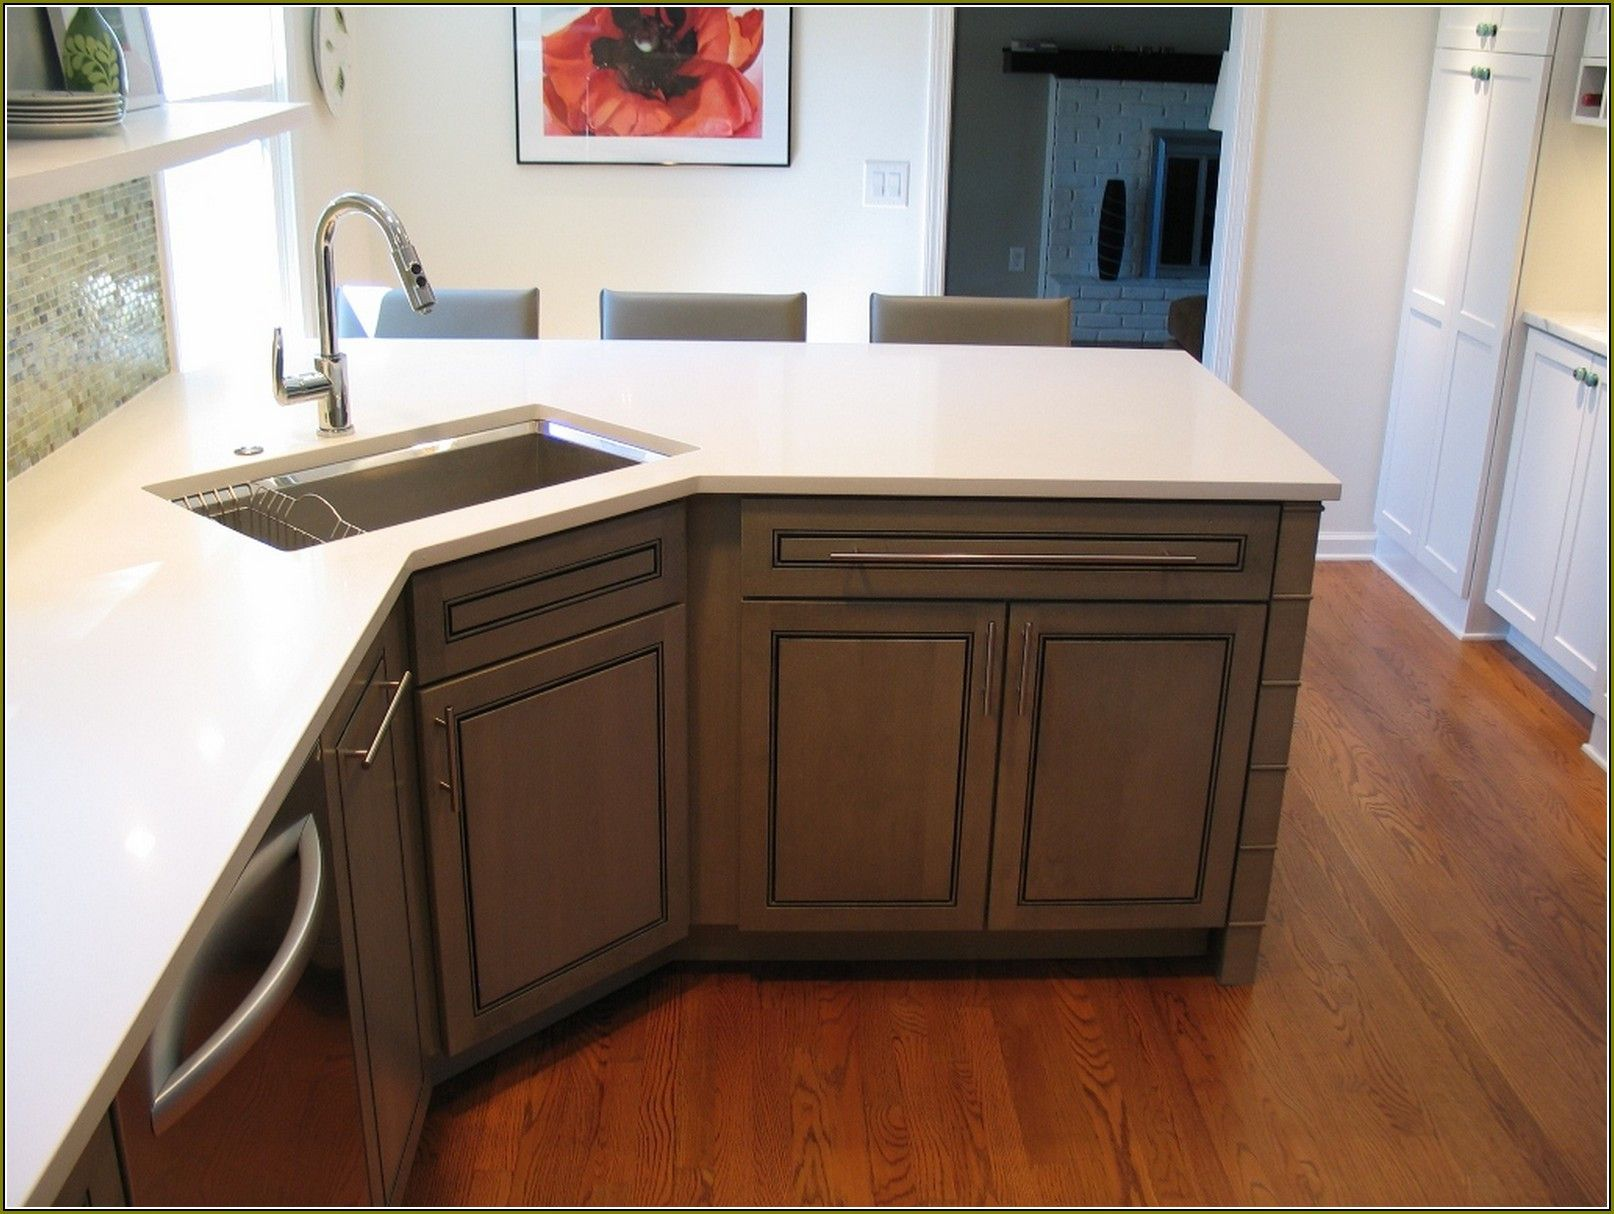 20 42 Inch Sink Base Cabinet Kitchen Remodeling Ideas On A Small Budget Check More At Elegant Kitchen Island Corner Sink Kitchen Ready Made Kitchen Cabinets